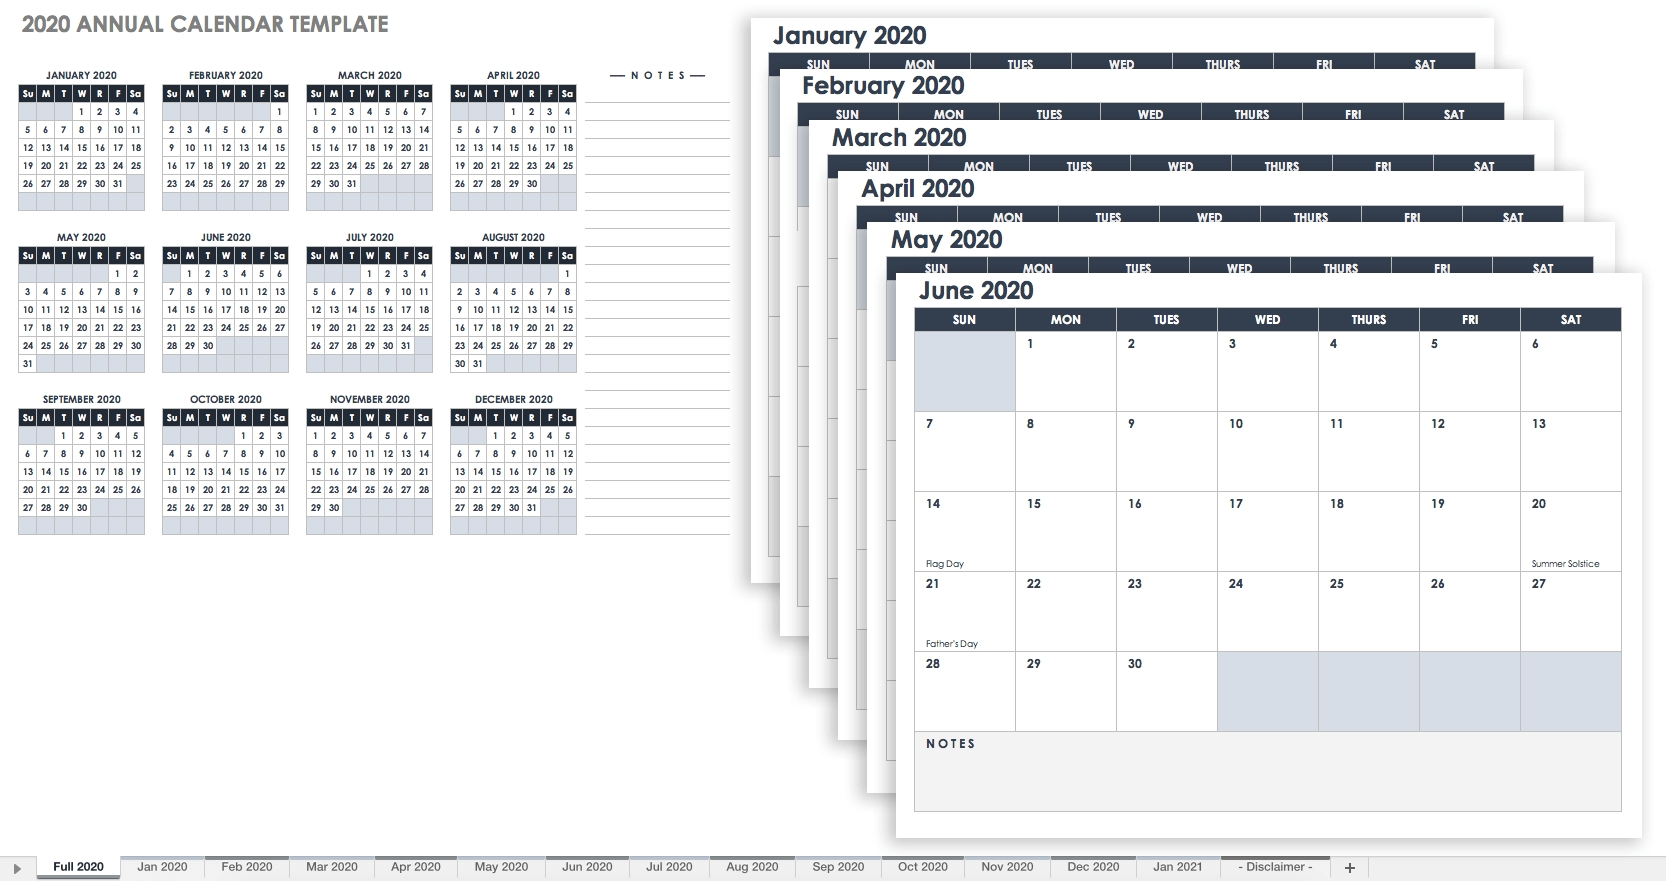 Free Excel Calendar Templates-Free Printable Monthly Calendar 2020 With Time Slots